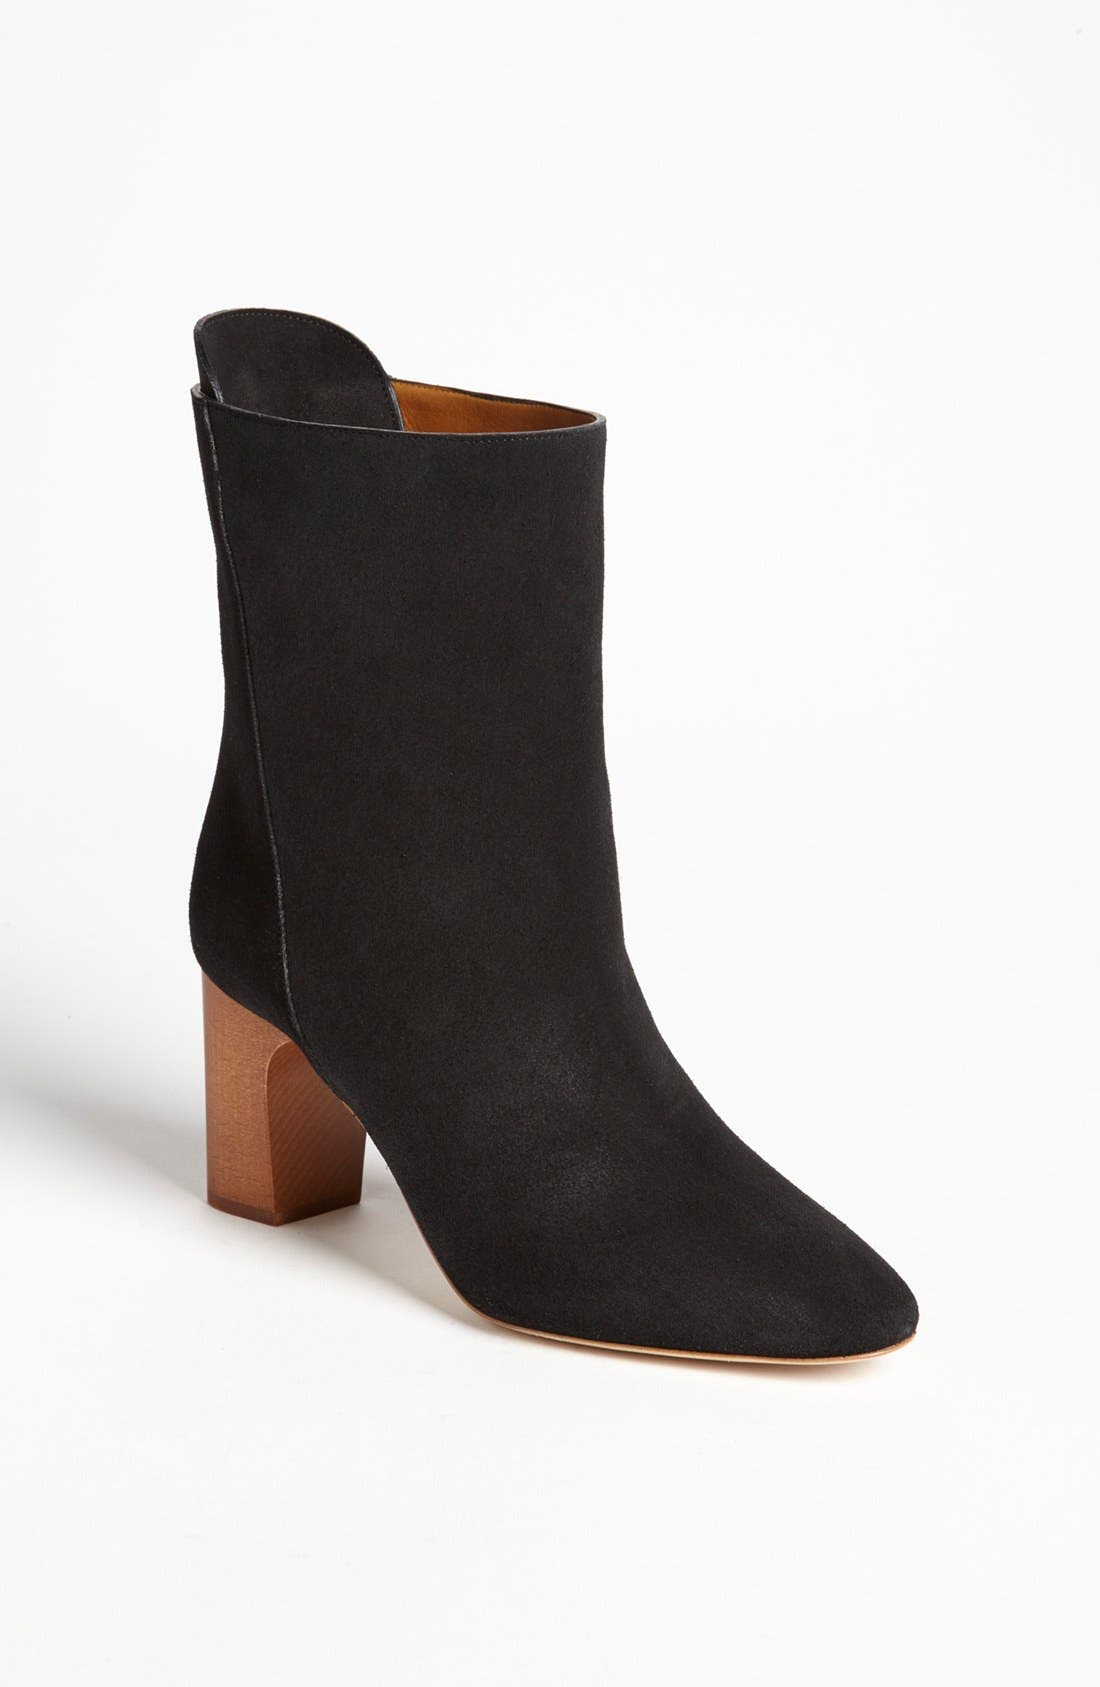 Alternate Image 1 Selected - Chloé 'Adelin' Mid Boot